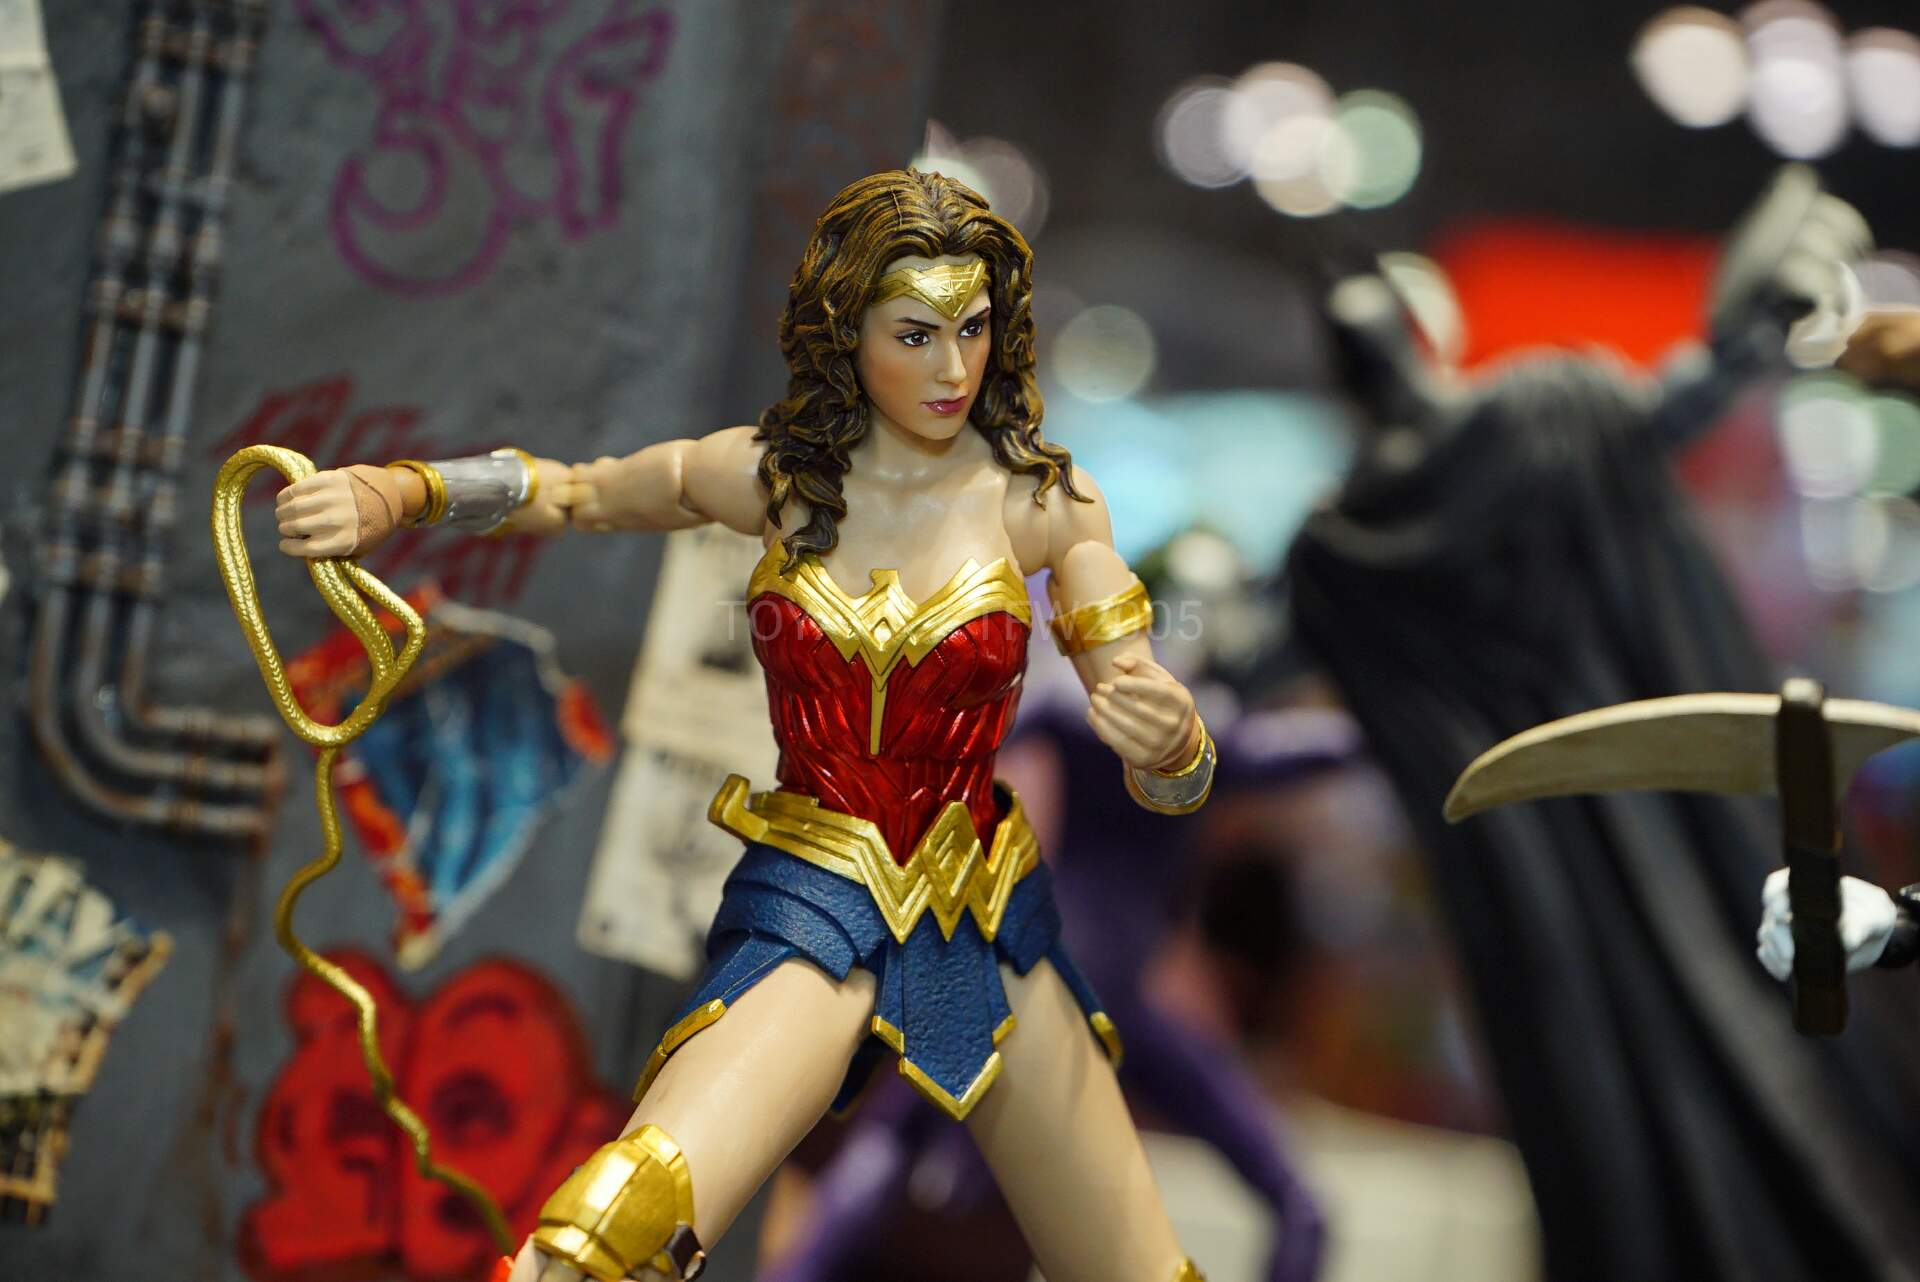 Toy-Fair-2020-McFarlane-DC-006.jpg